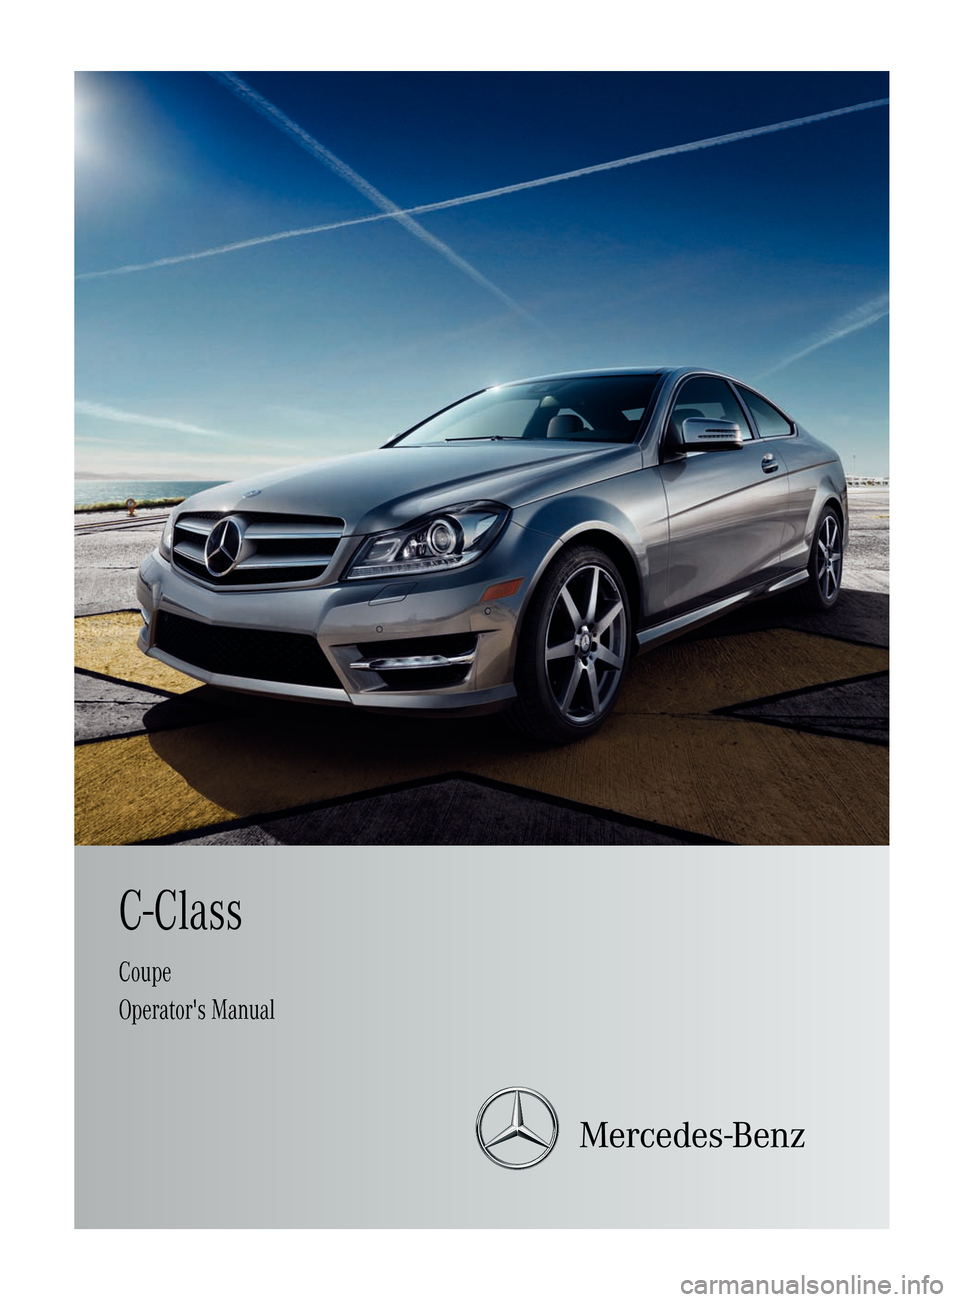 Mercedes Benz C Class Coupe 2012 Cl204 Owner S Manual